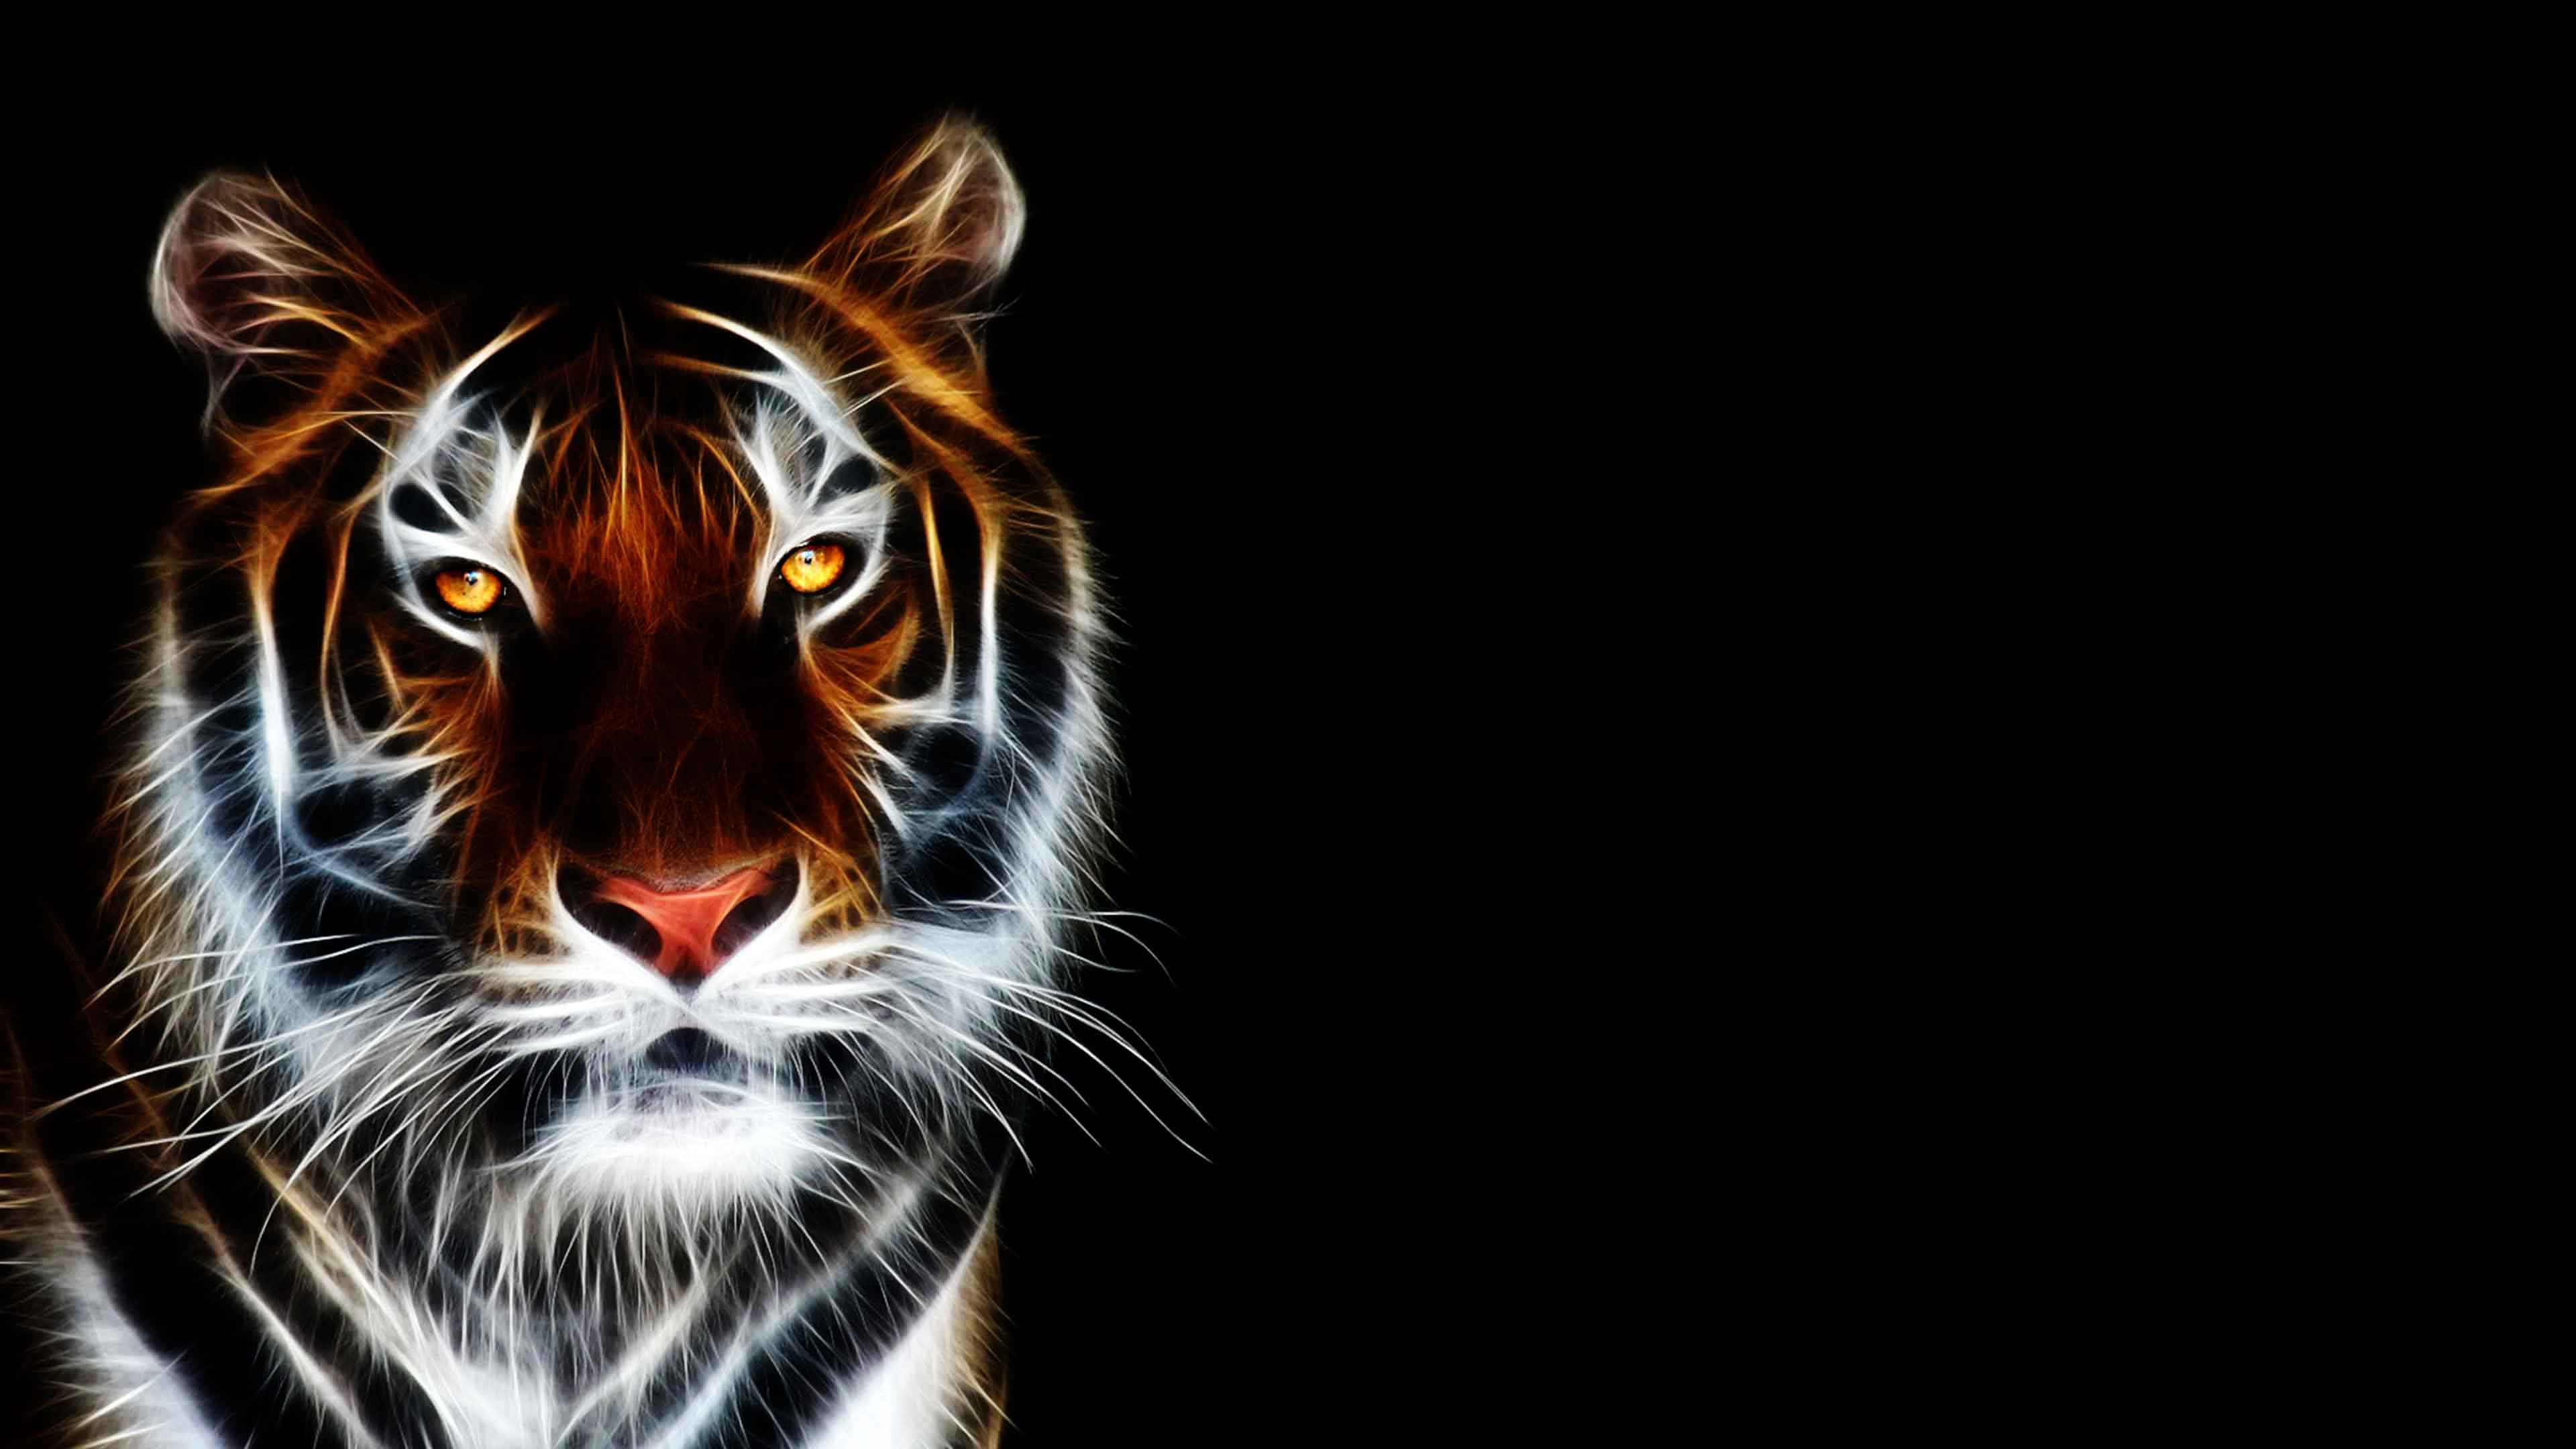 White Tiger Wallpaper Hd 66 Images